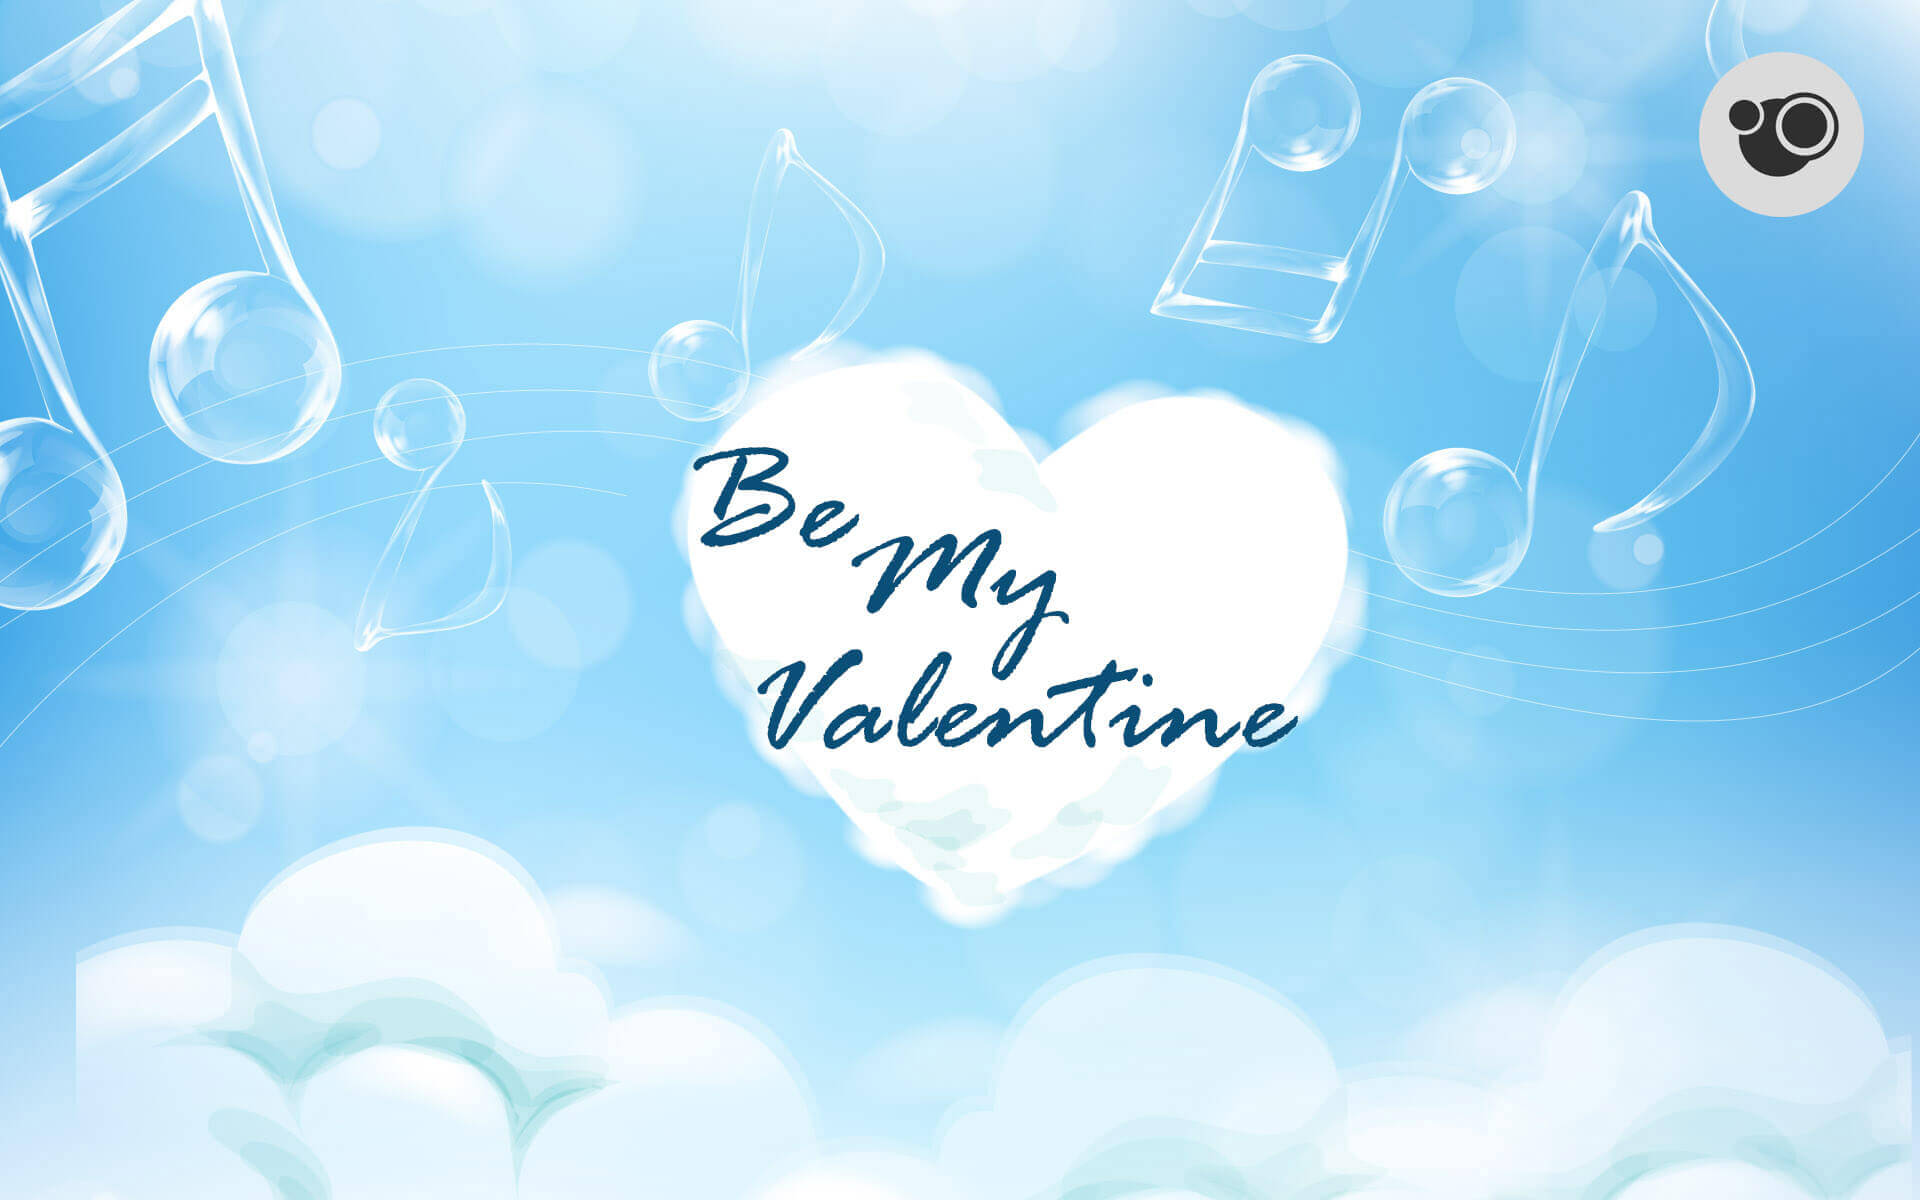 Be-my-valentine-hd-wallpaper-download-free-2